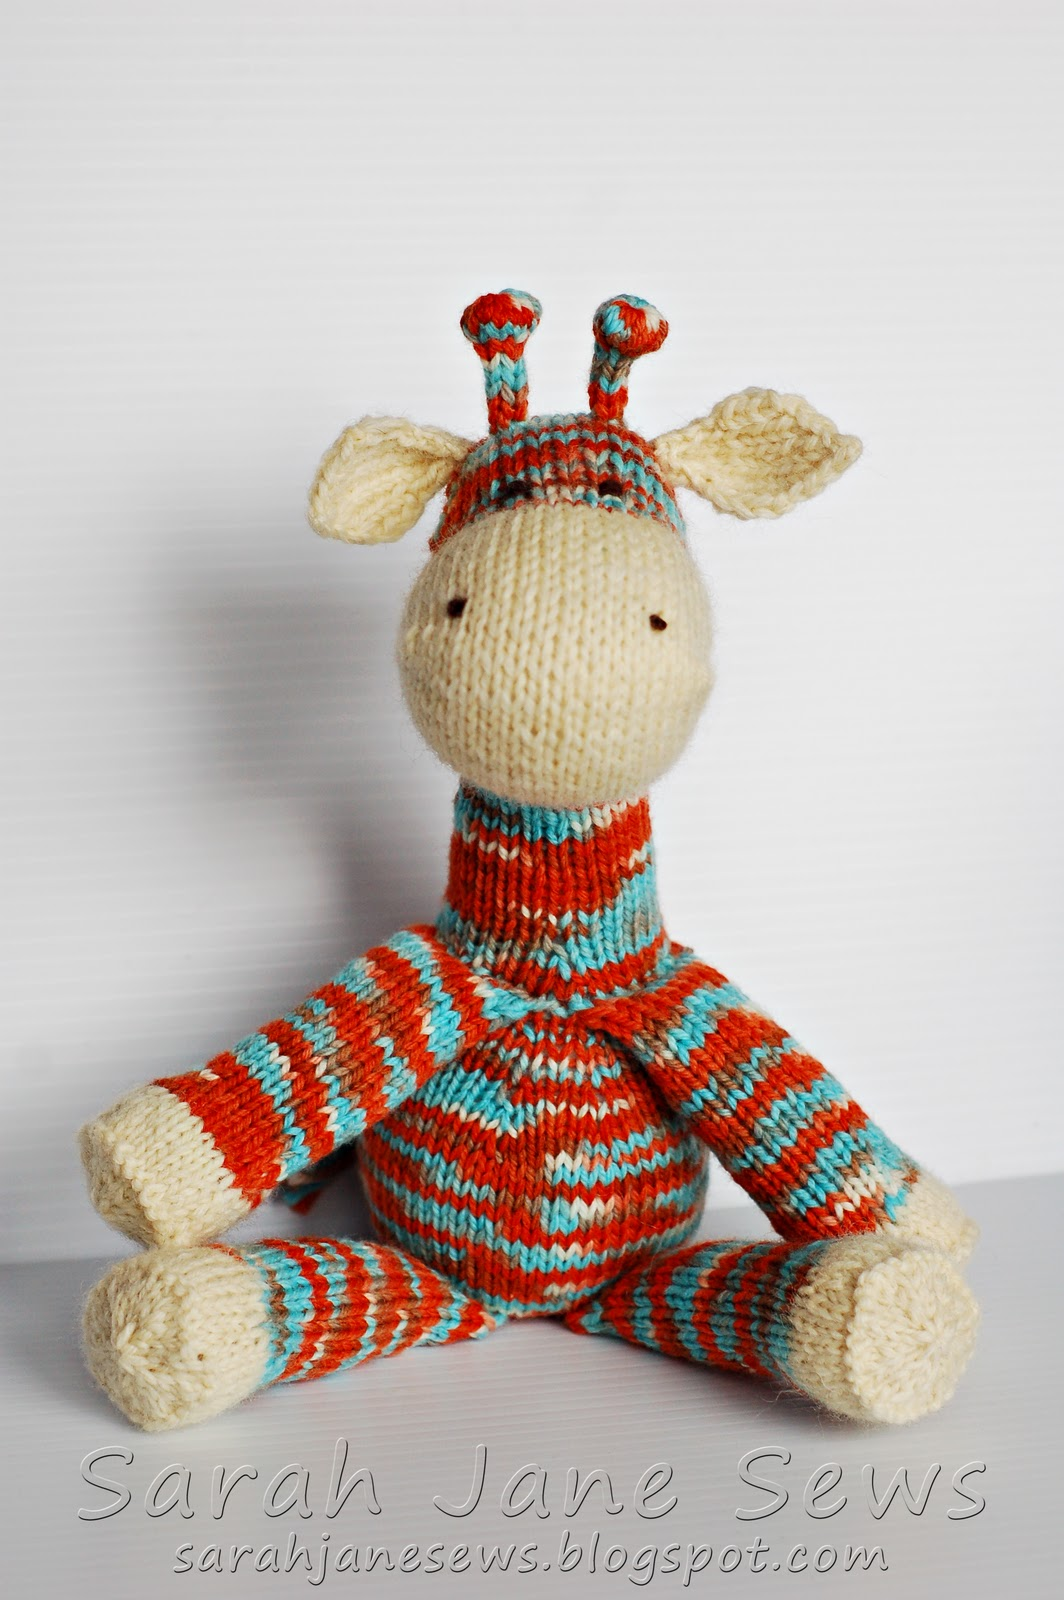 Knitting Pattern Giraffe : Sarah Jane Sews: Gerald the Giraffe